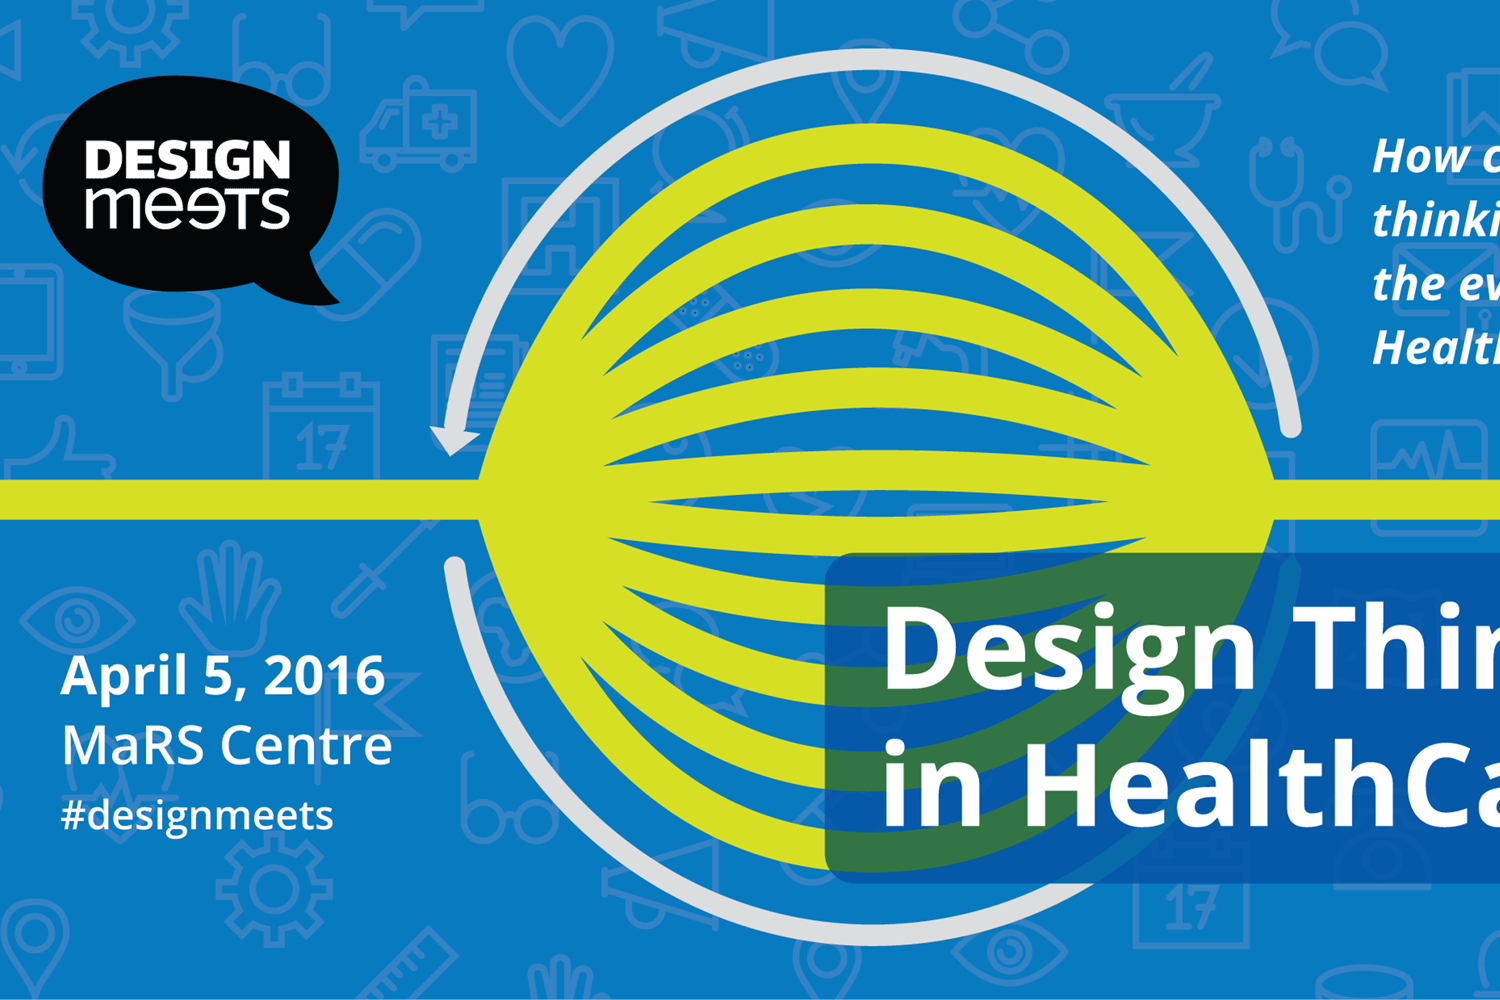 Join us for our upcoming DesignMeets event on April. 5th, 2016!